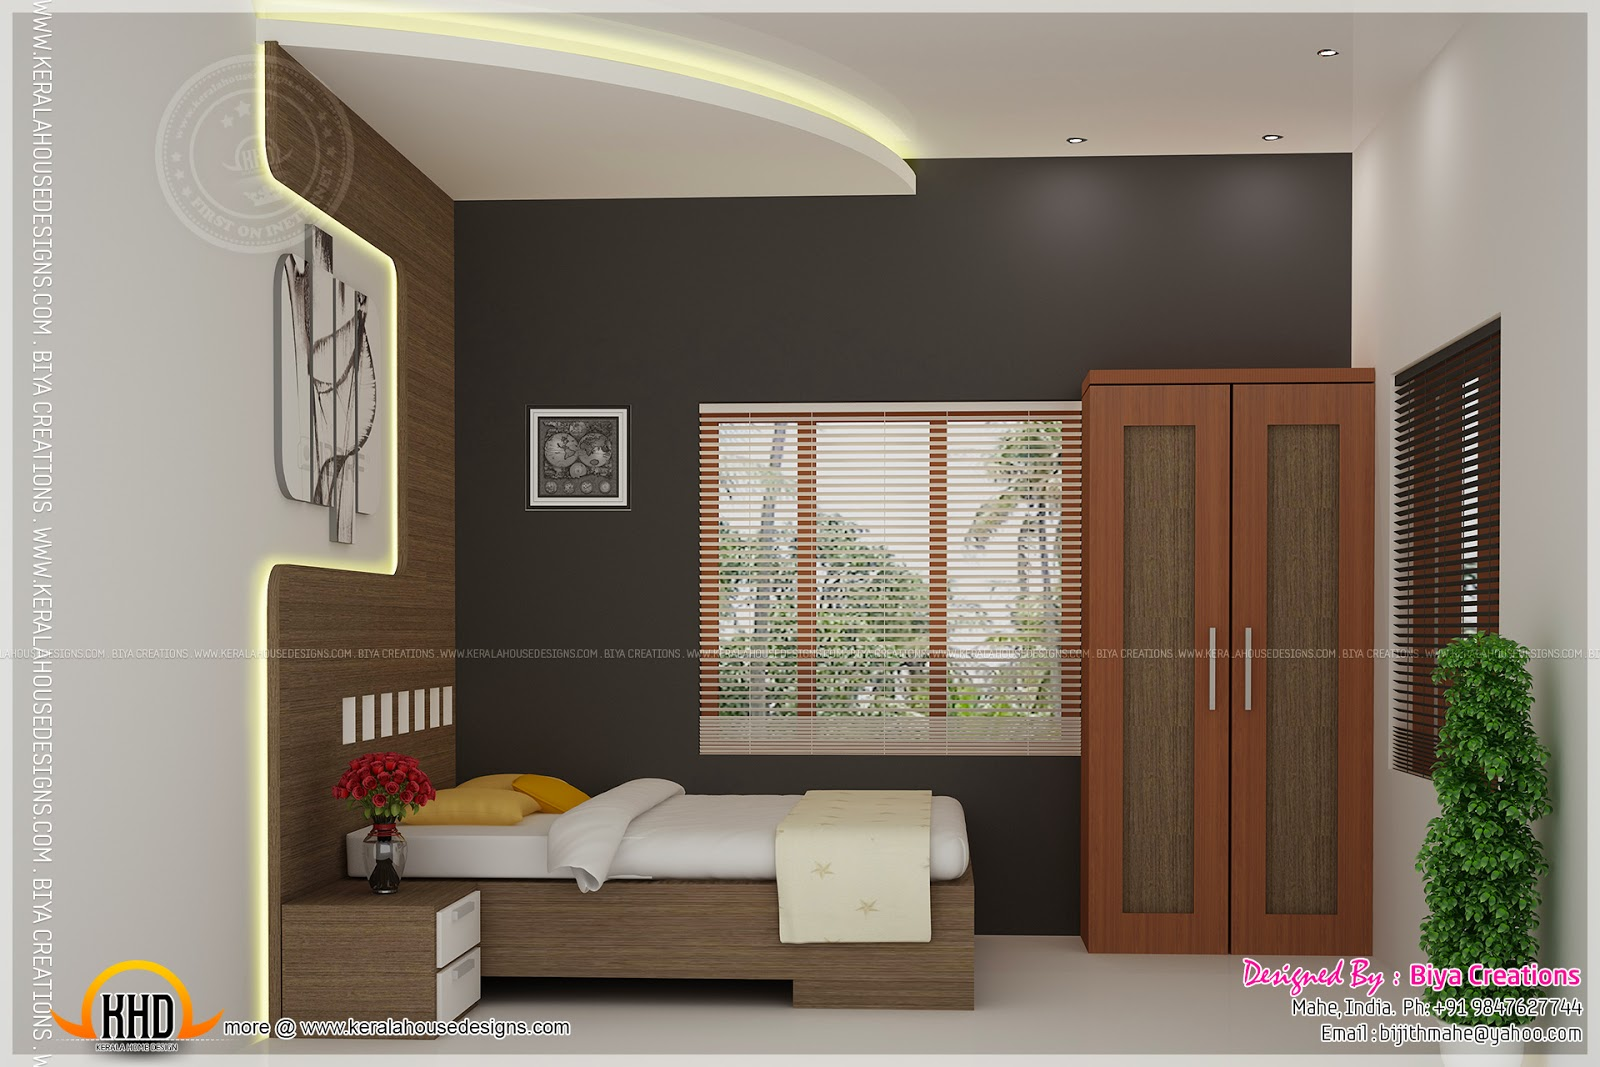 Bedroom kid bedroom and kitchen interior kerala home for Home design ideas